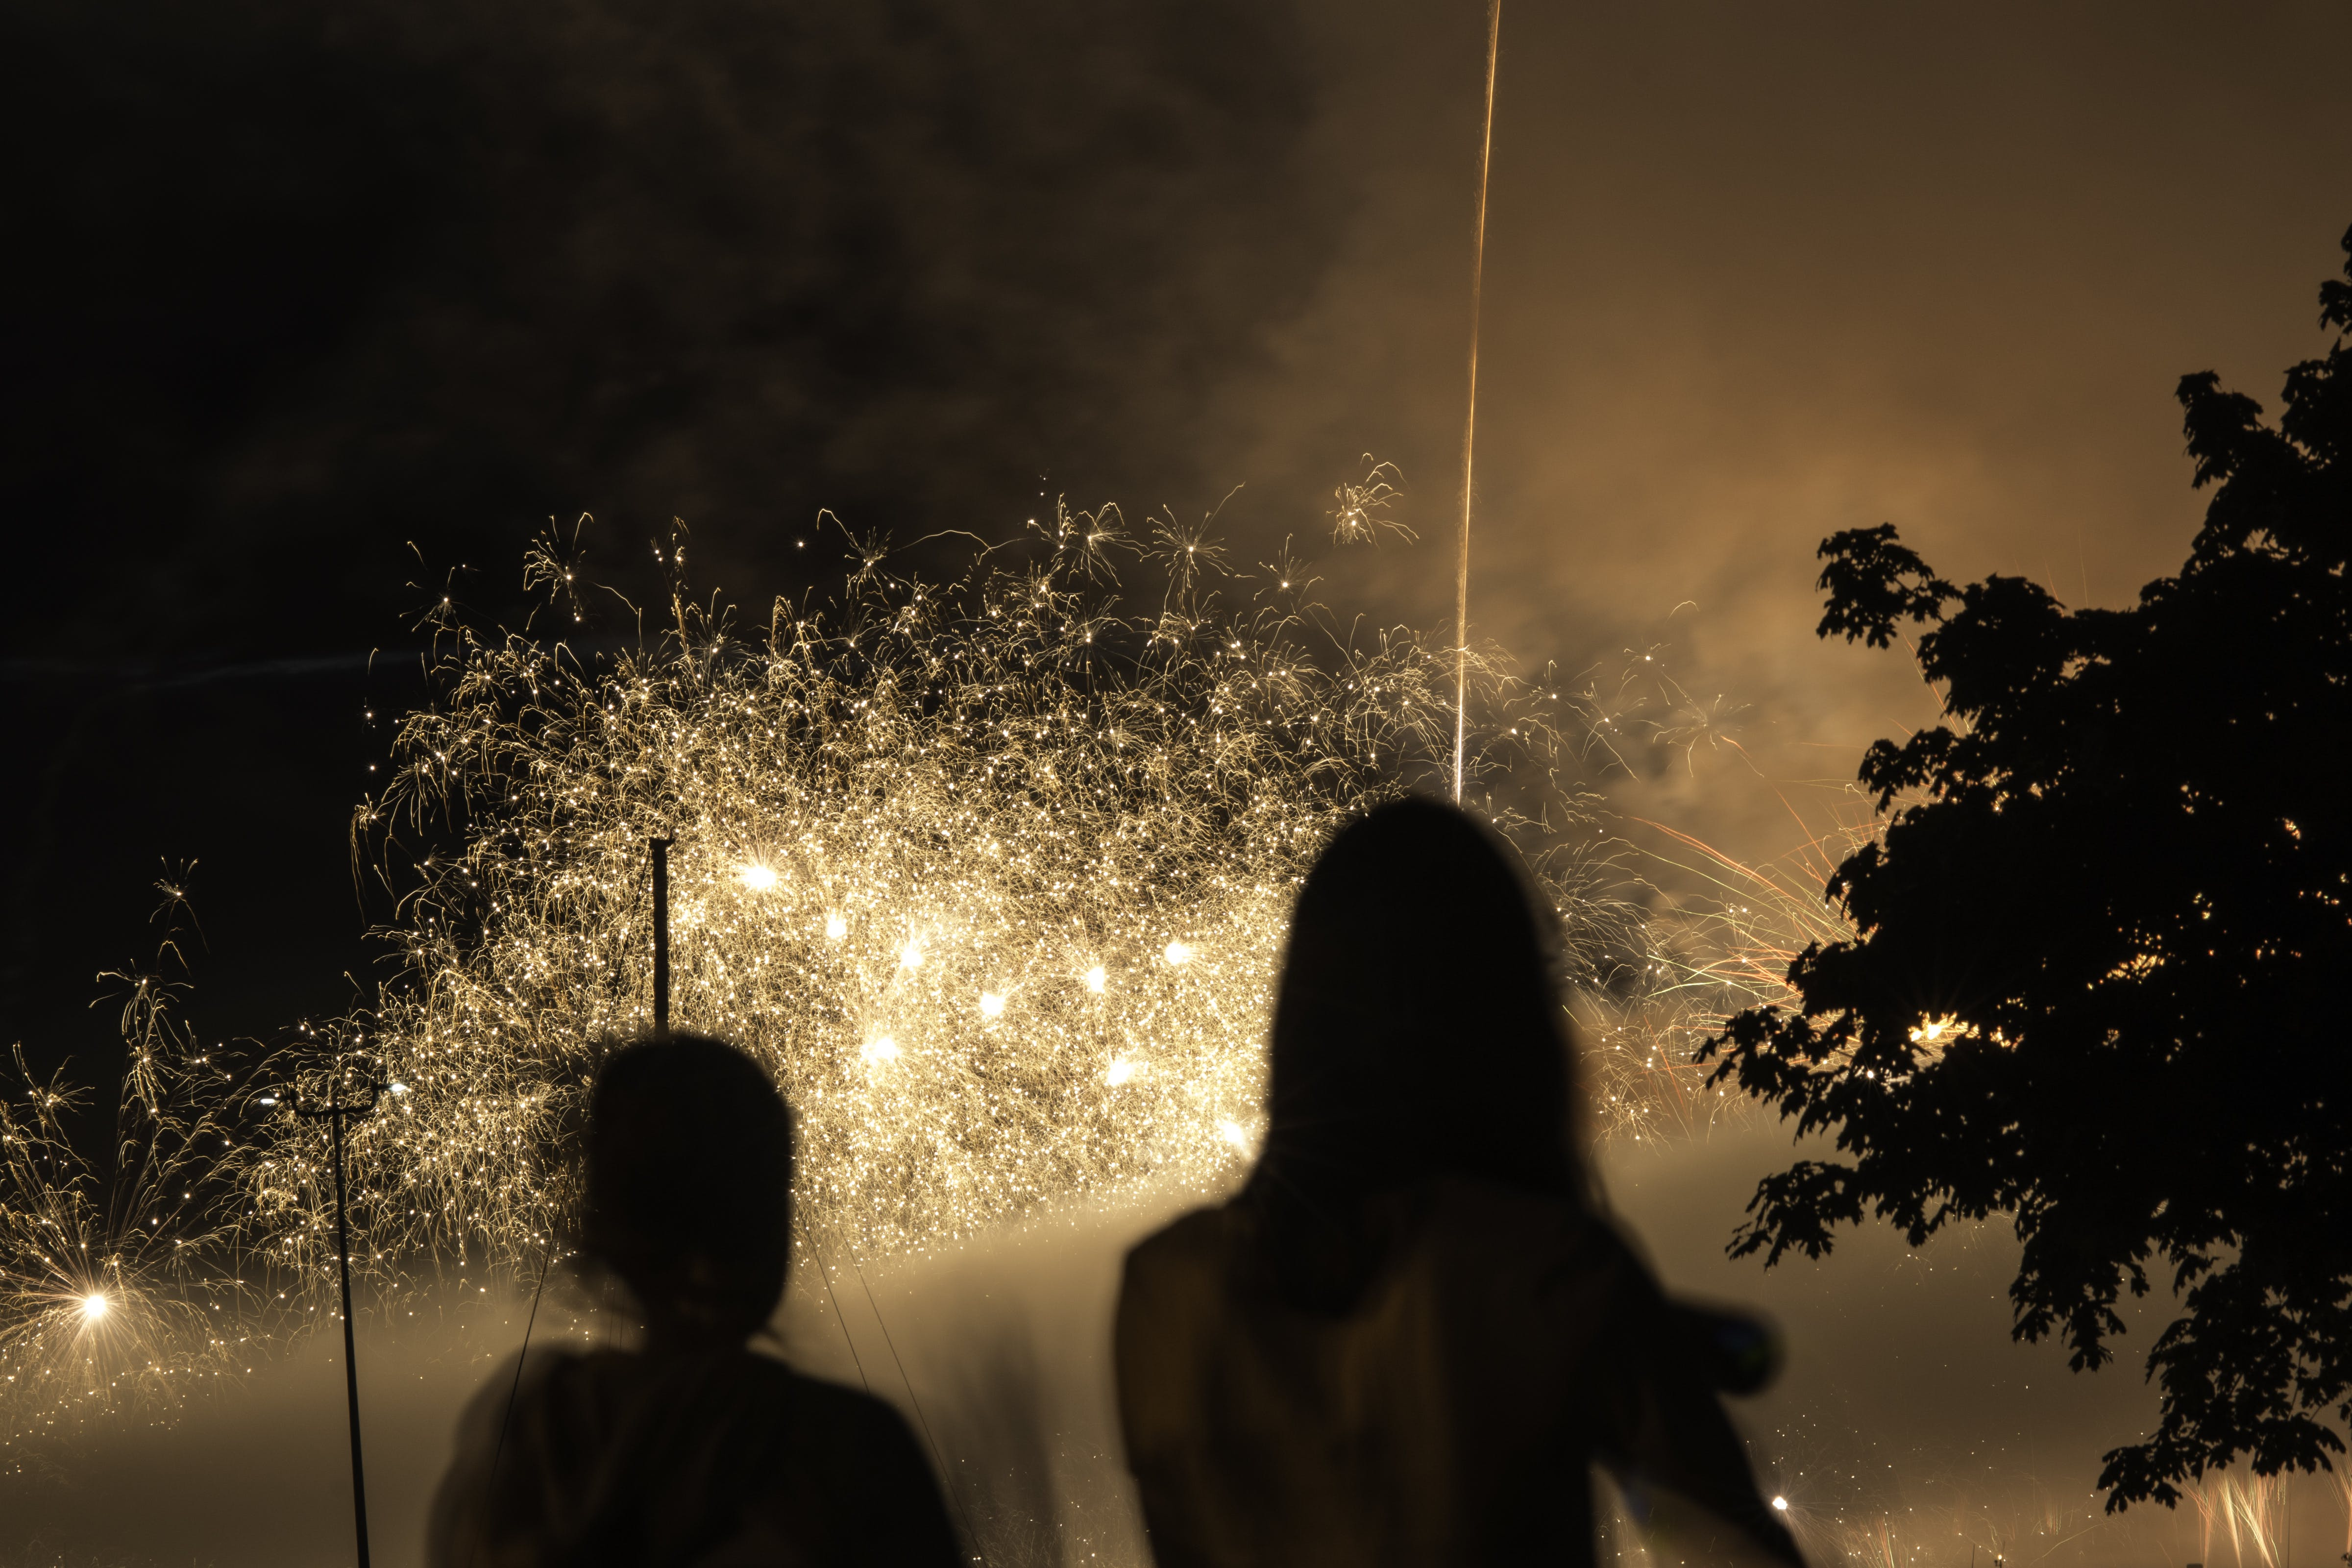 Free stock photo of fireworks, silhouette